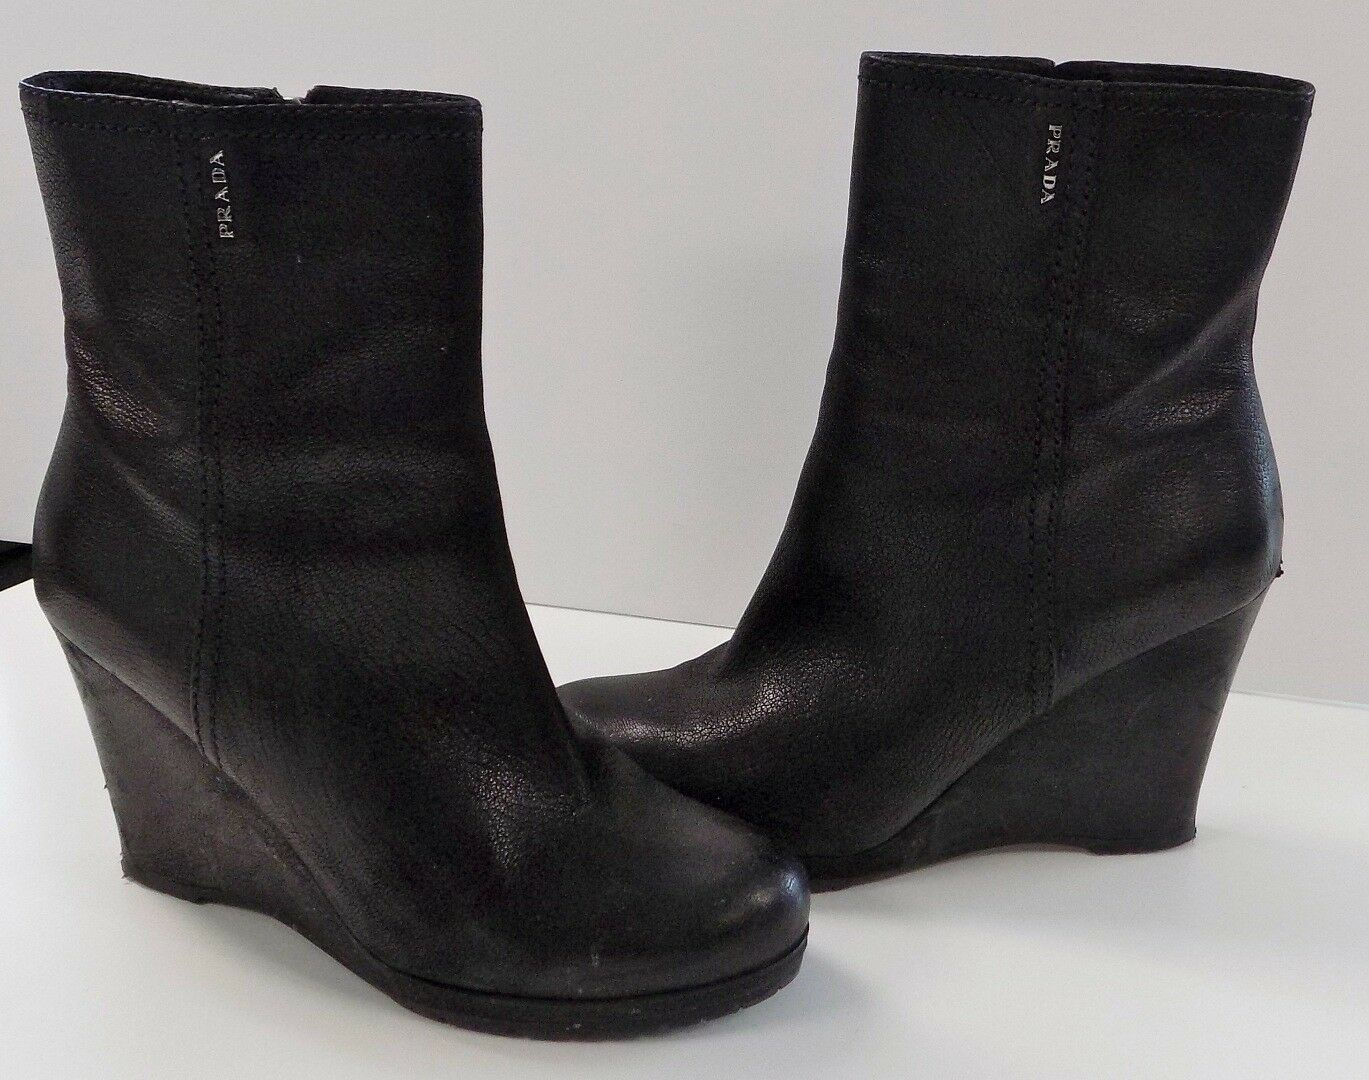 PRADA Black Leather Ankle Bootie GUC Wedges Side Zip 4in Heel GUC Bootie Sz 40 B3993 709c07